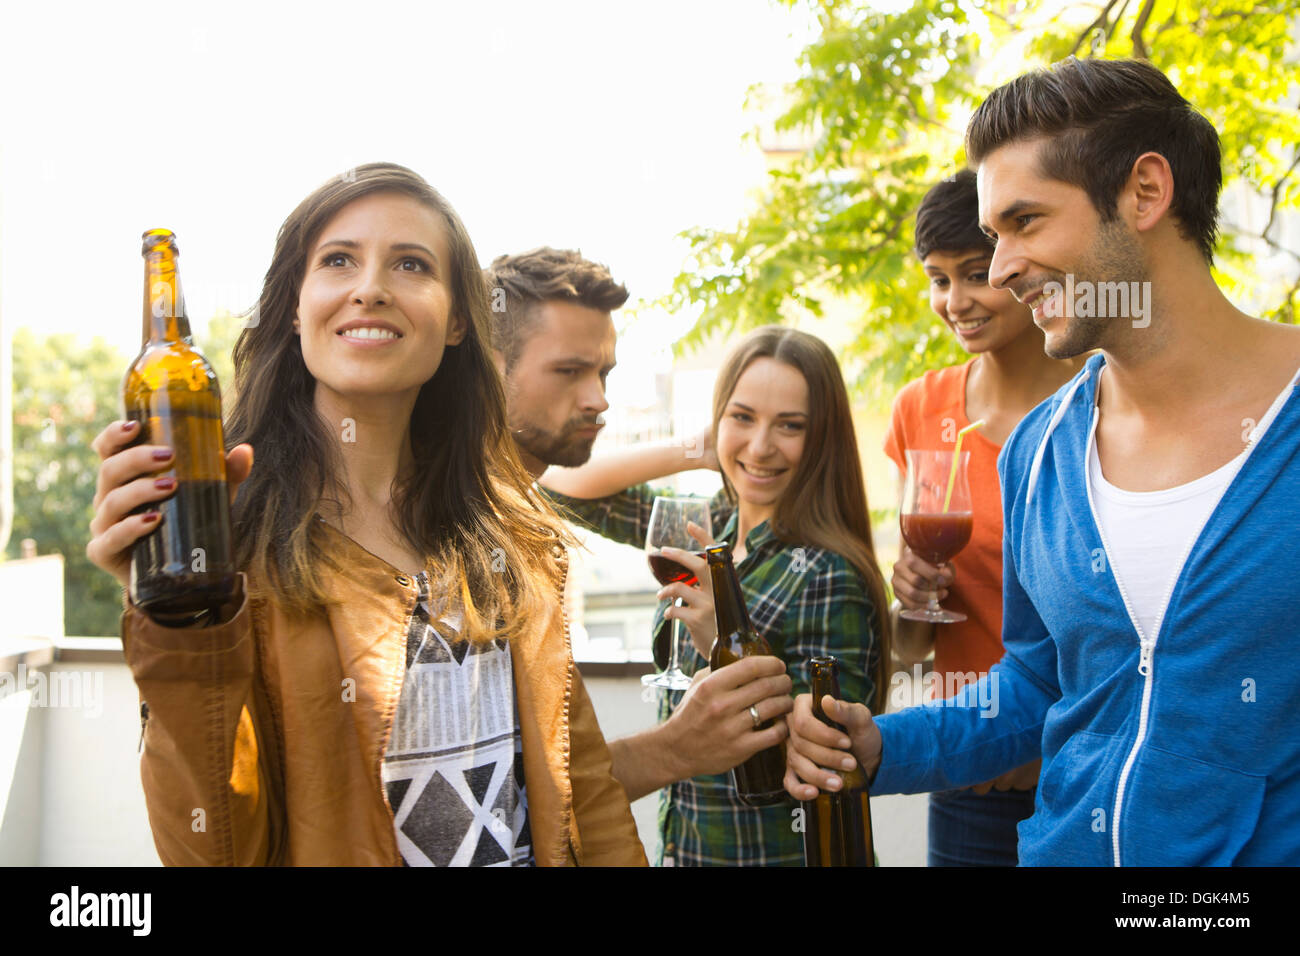 Friends drinking alcohol outdoors - Stock Image